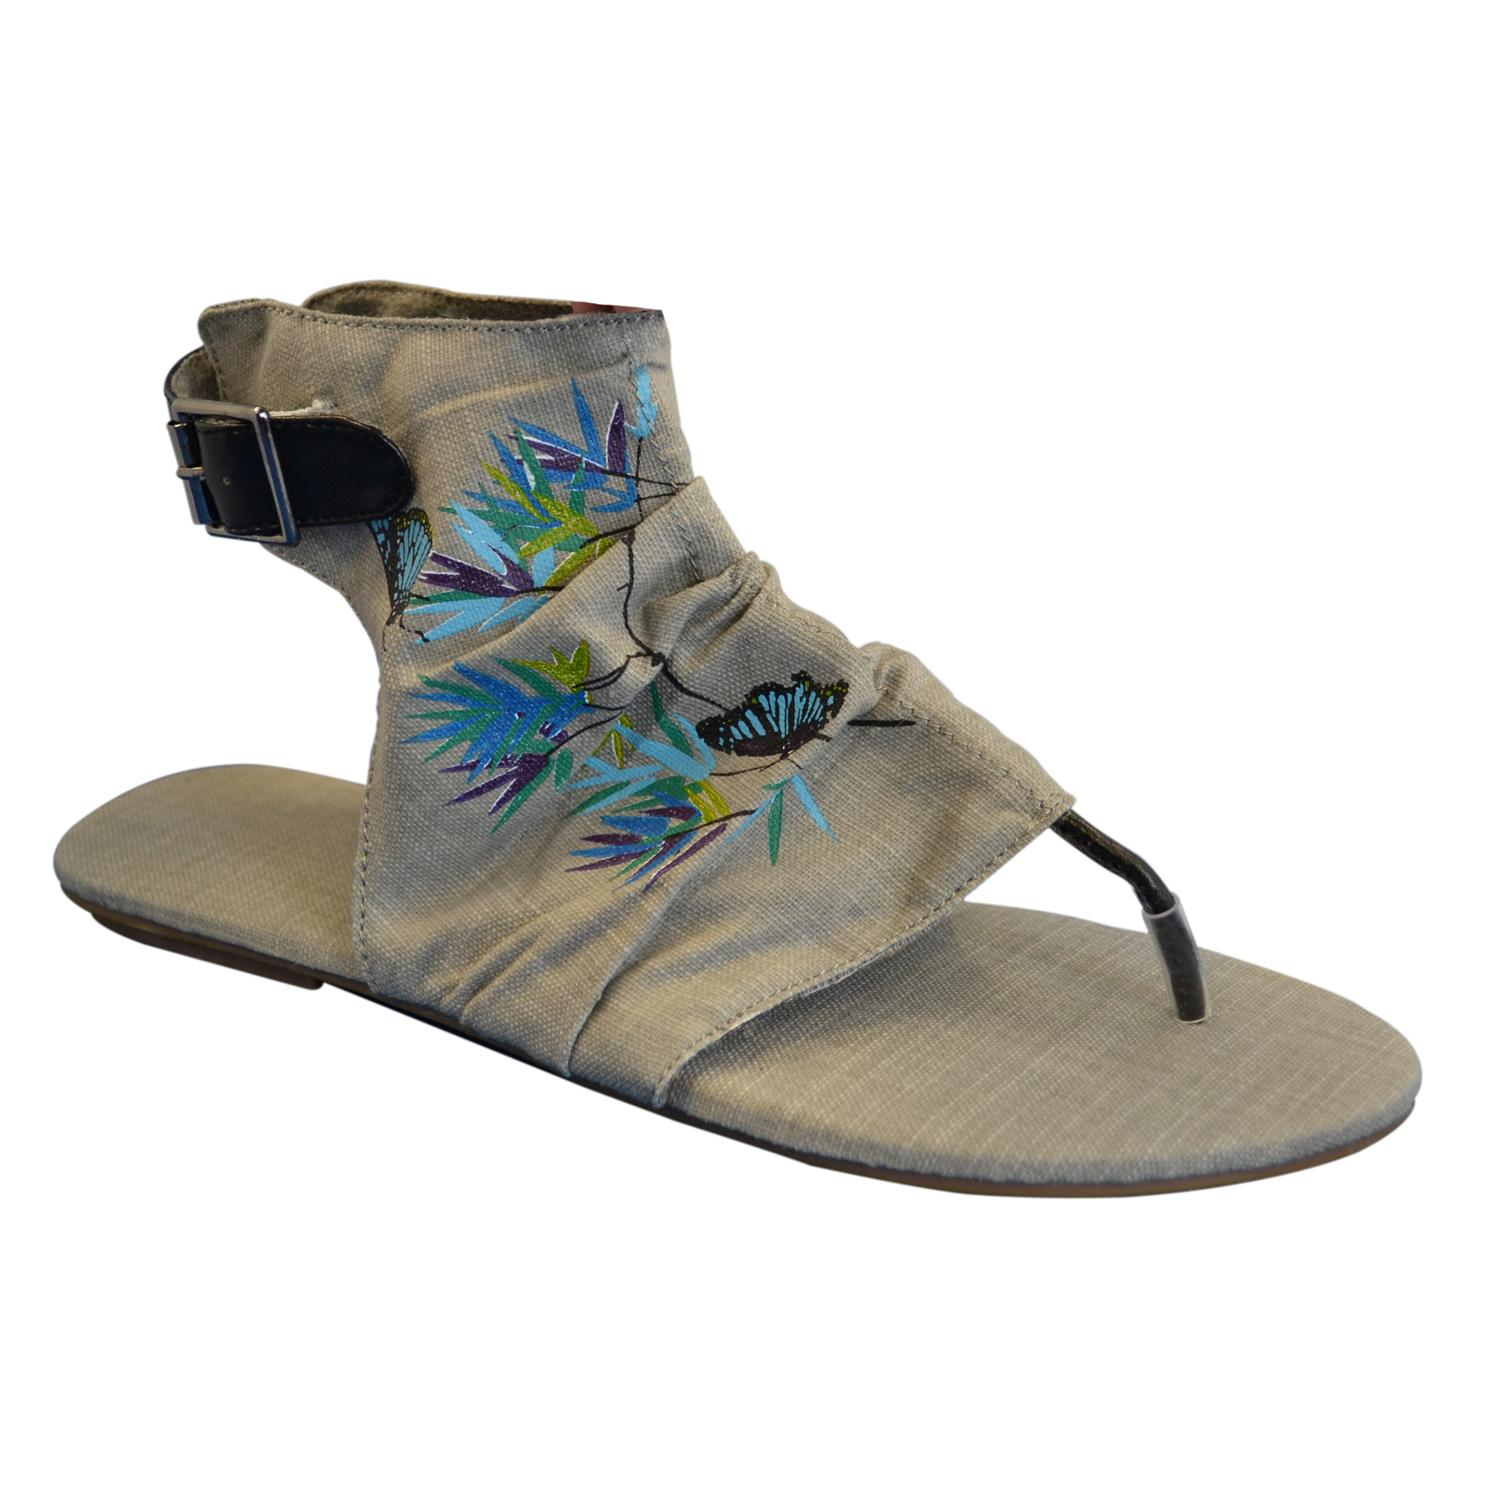 Muk Luks Women's Sun Luks Printed Canvas Cut-out Scrunched Gladiator Sandals